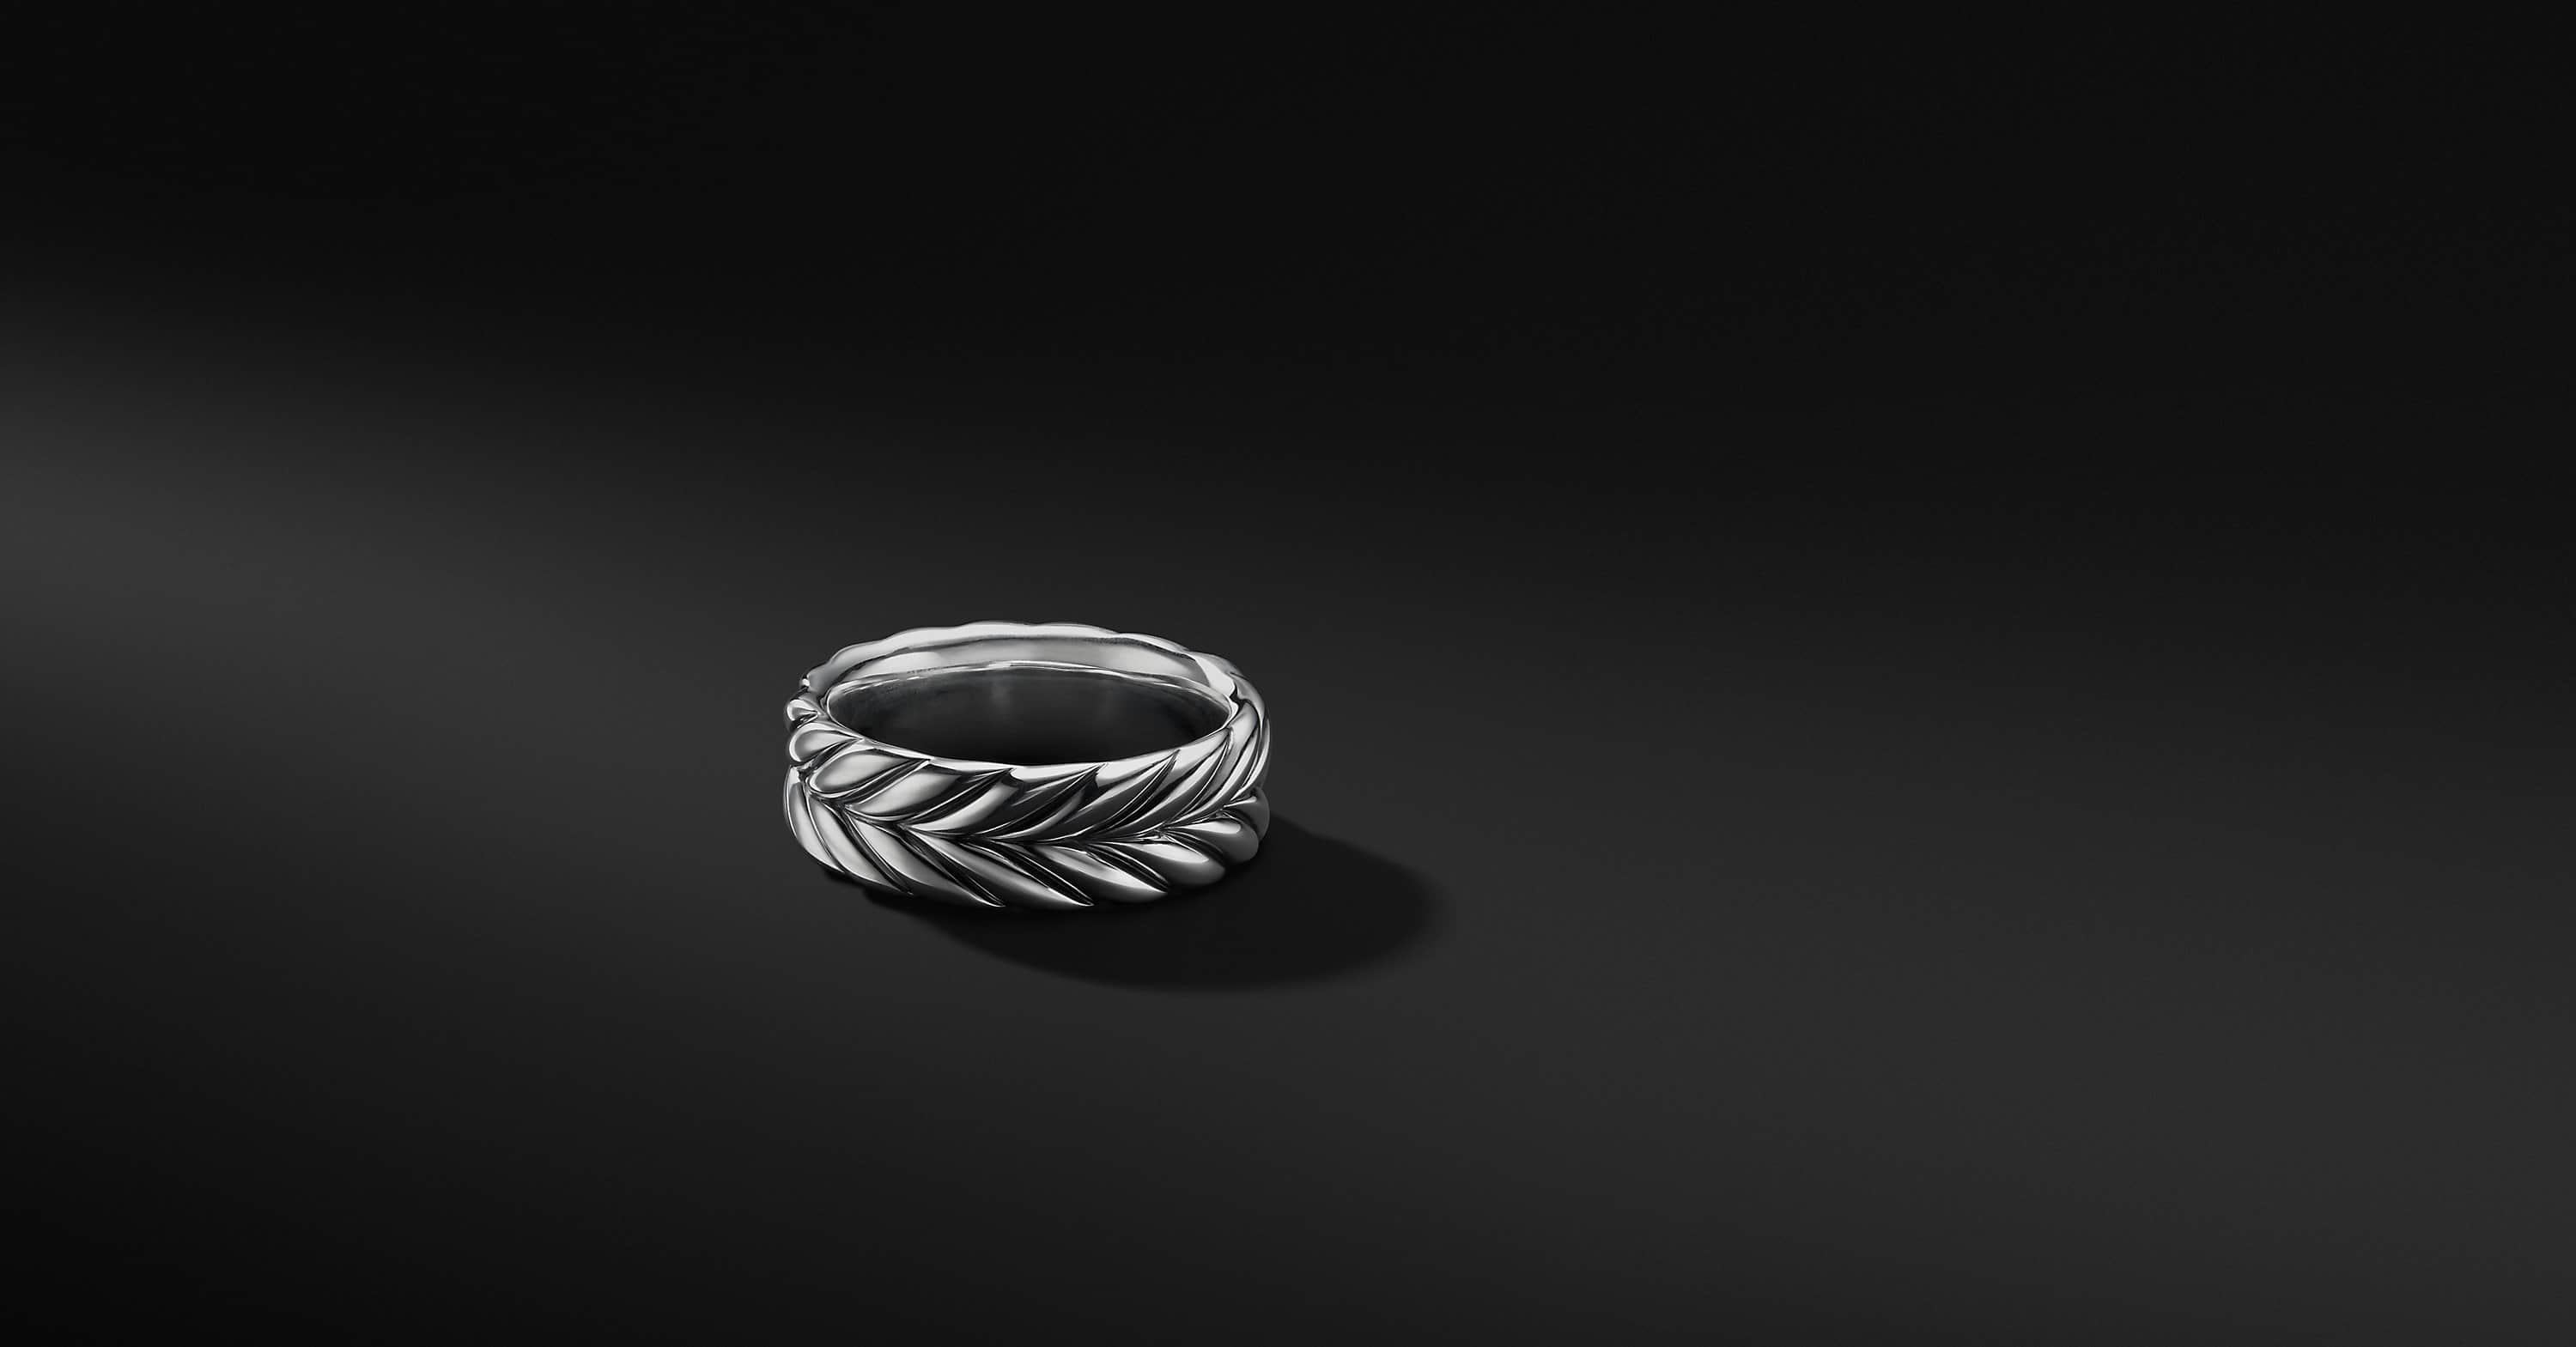 Chevron Band in Sterling Silver, 8.5mm